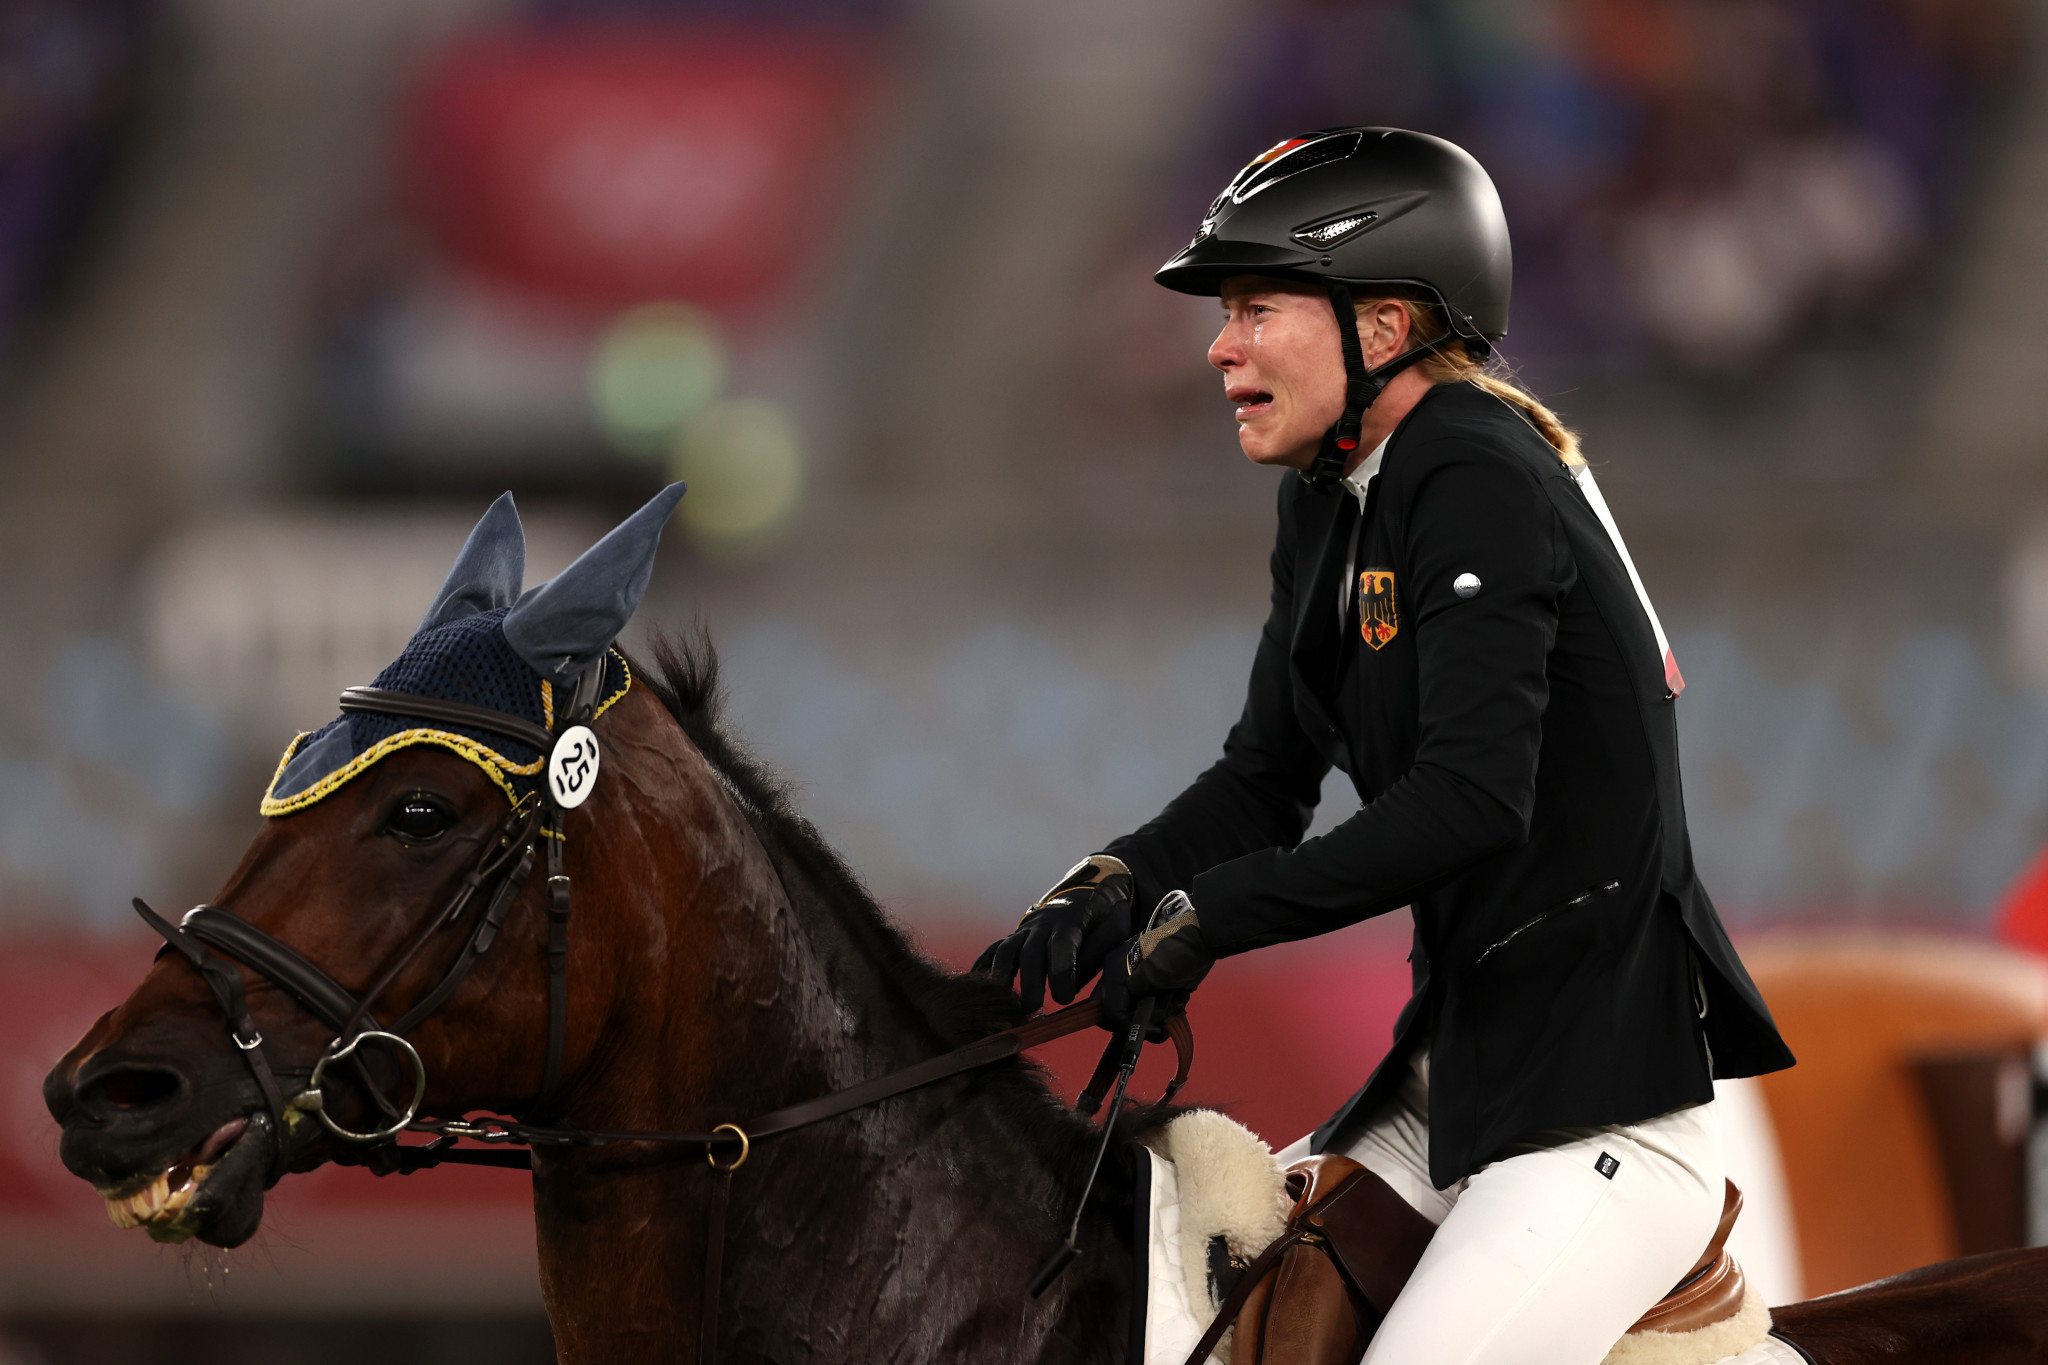 Schleu and Raisner face criminal investigation in Germany over Tokyo 2020 horse abuse controversy